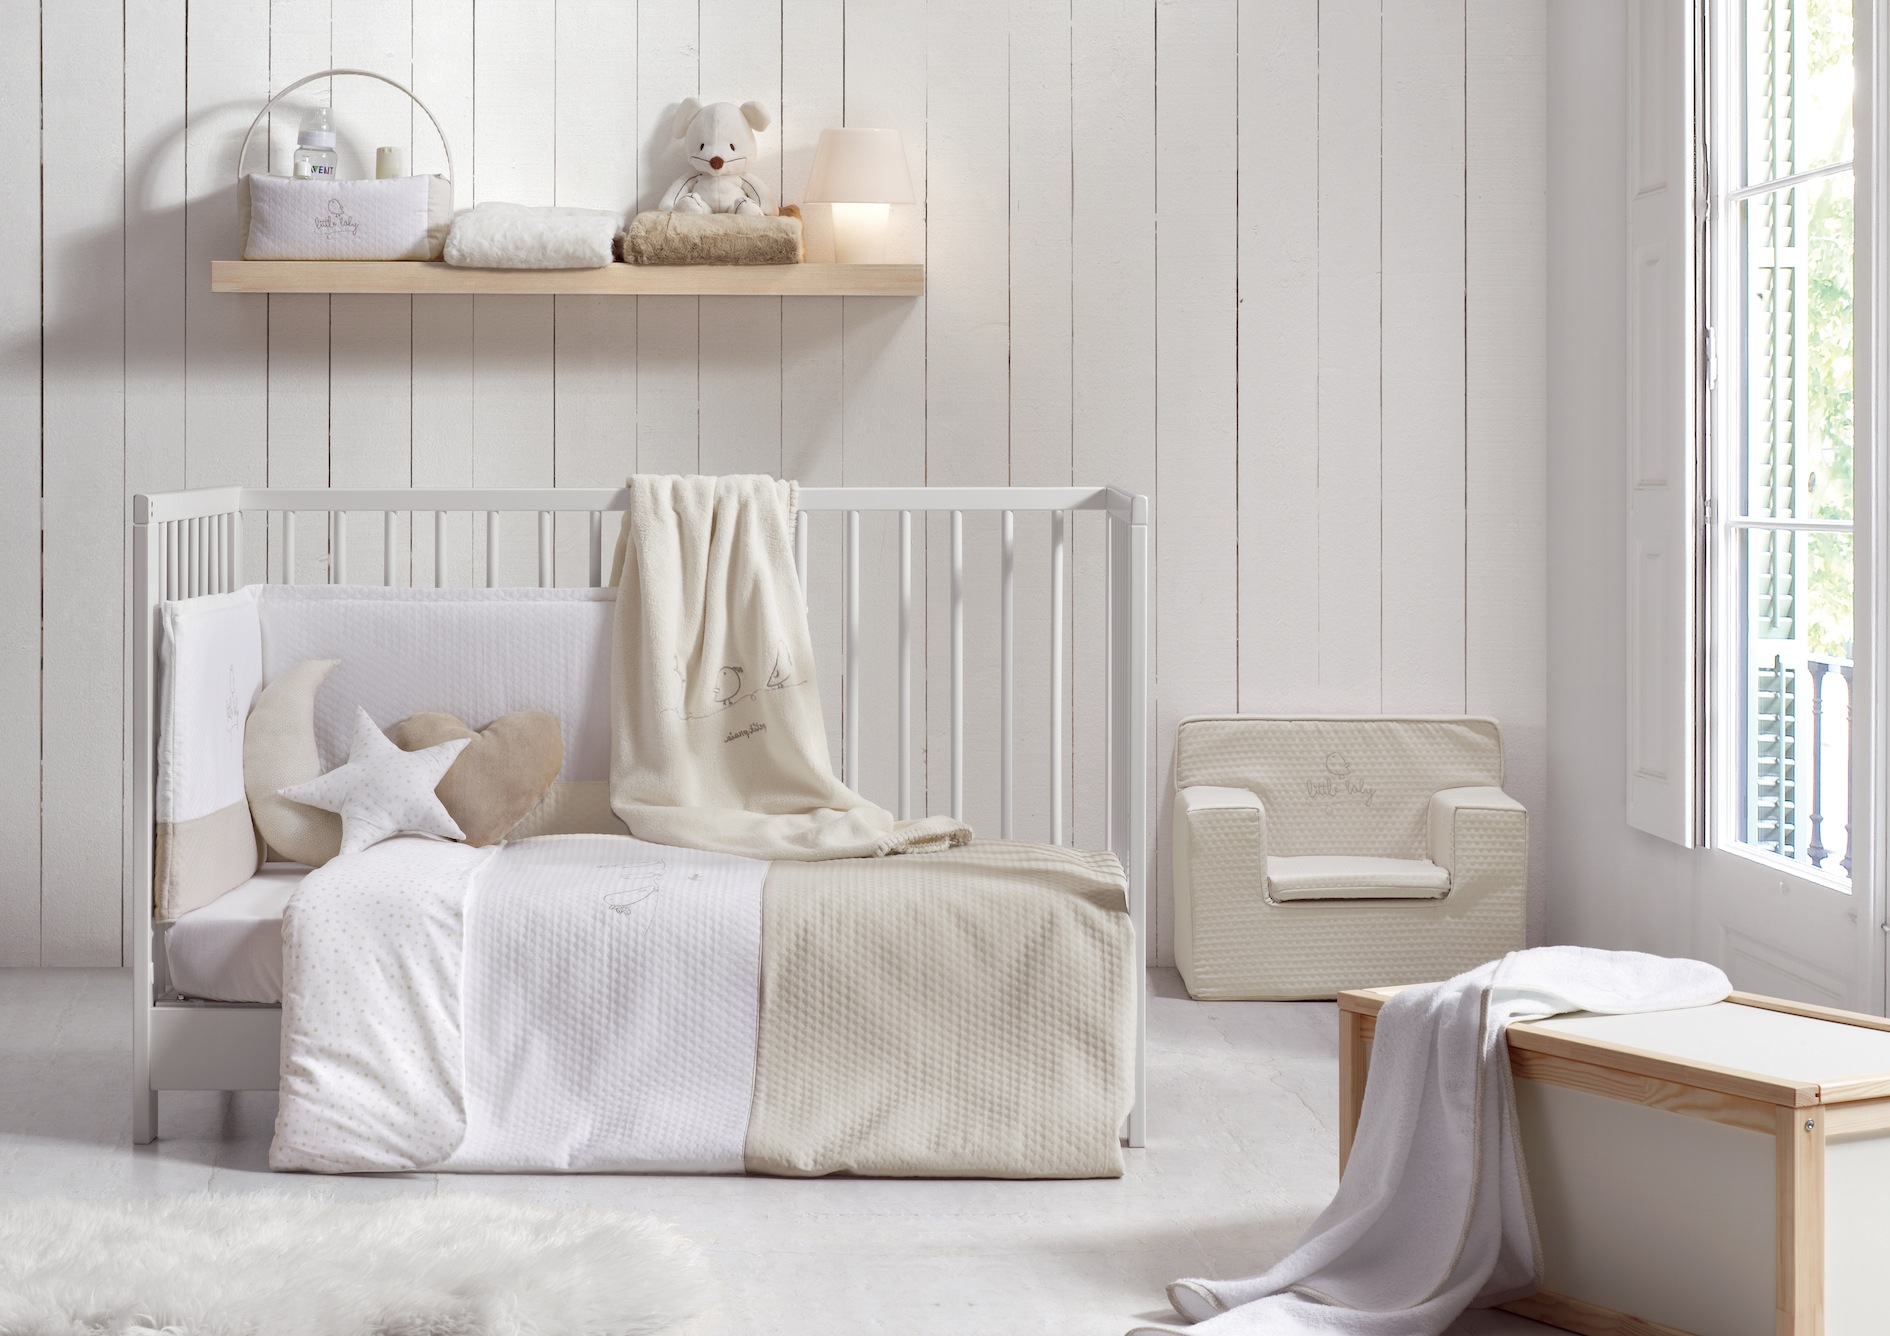 10 ideas para decorar la habitaci n del beb productos - Ideas decoracion bebe ...